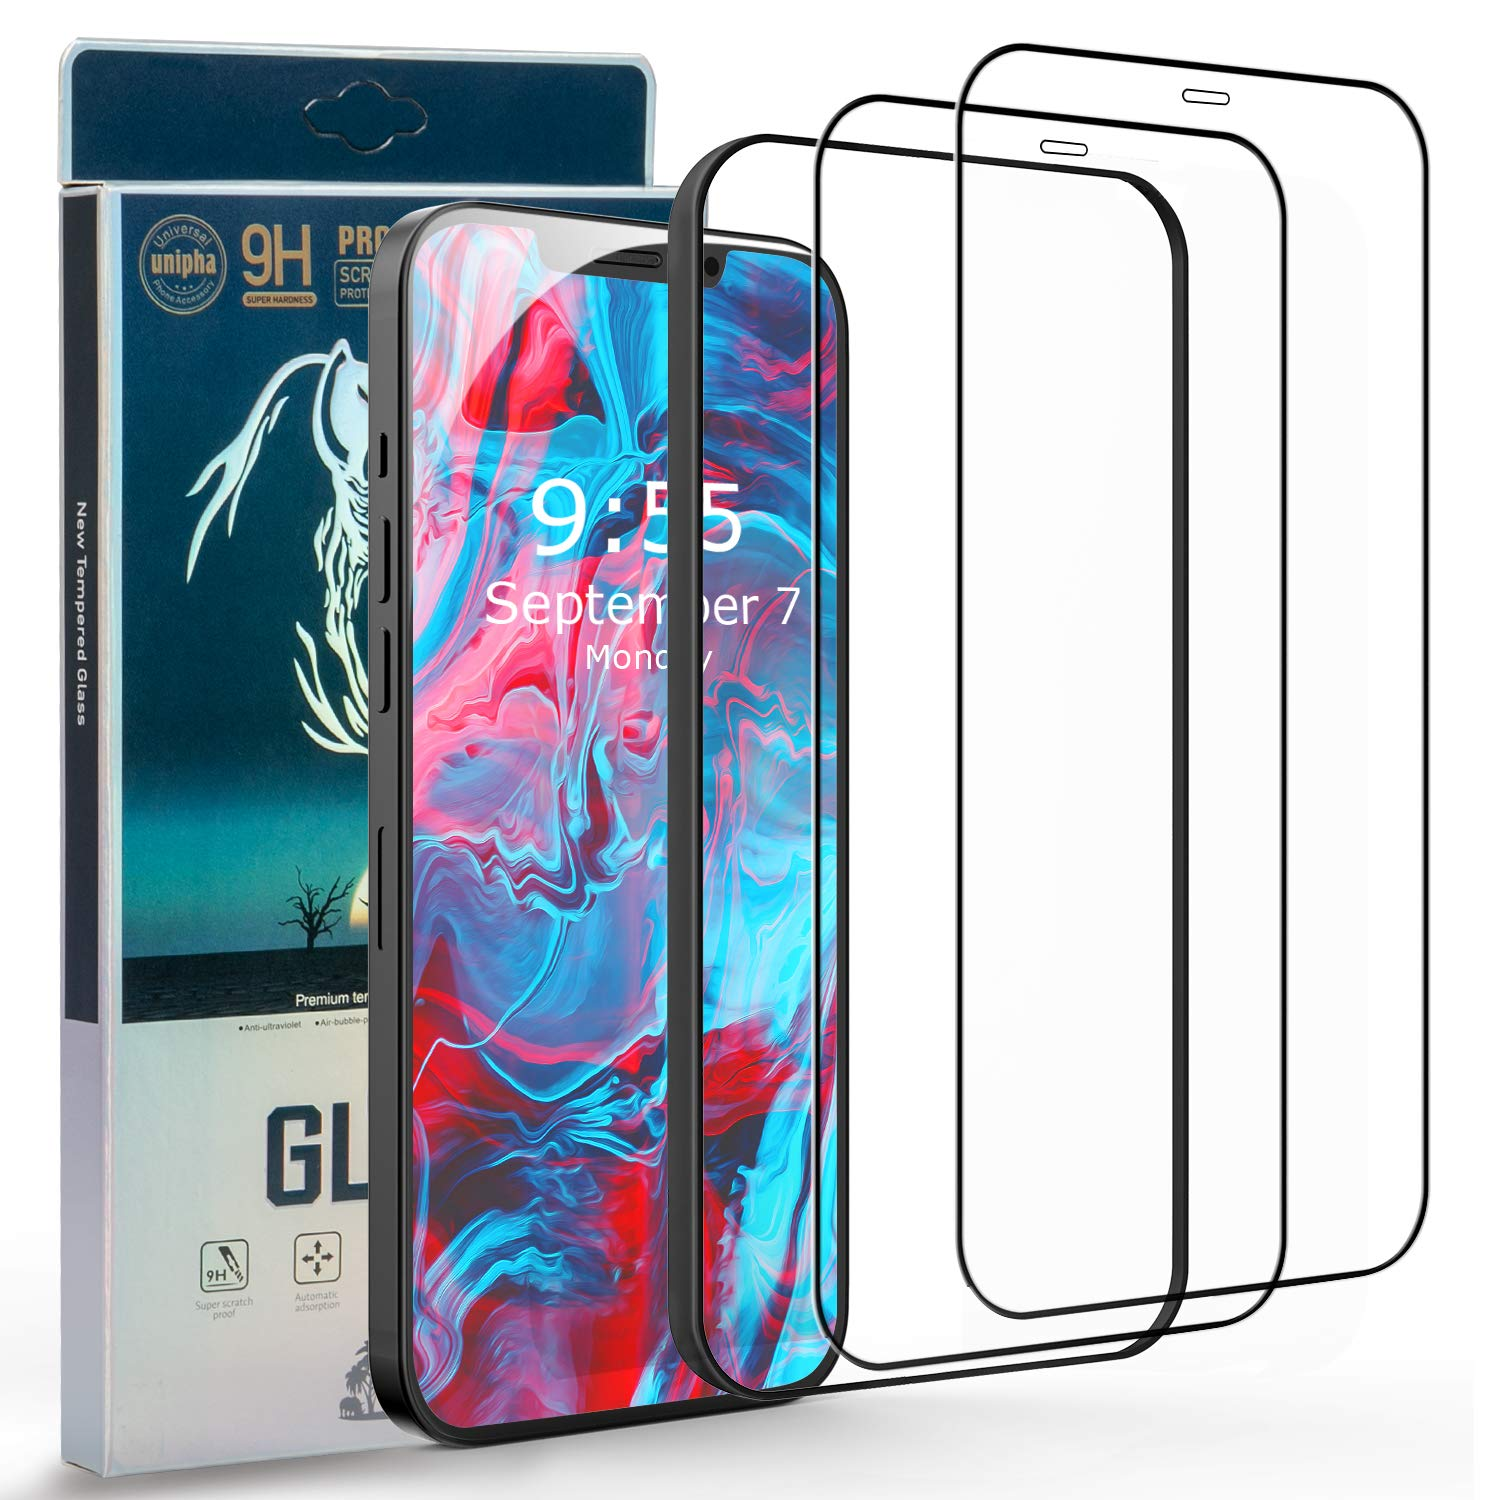 [2 Pack] Screen Protector for iPhone 12 Pro Max, [HD Clear] [Bubble-Free] [Anti-Scratch] [Case Friendly] Tempered Glass Film for iPhone 12 Pro Max 6.7 inch